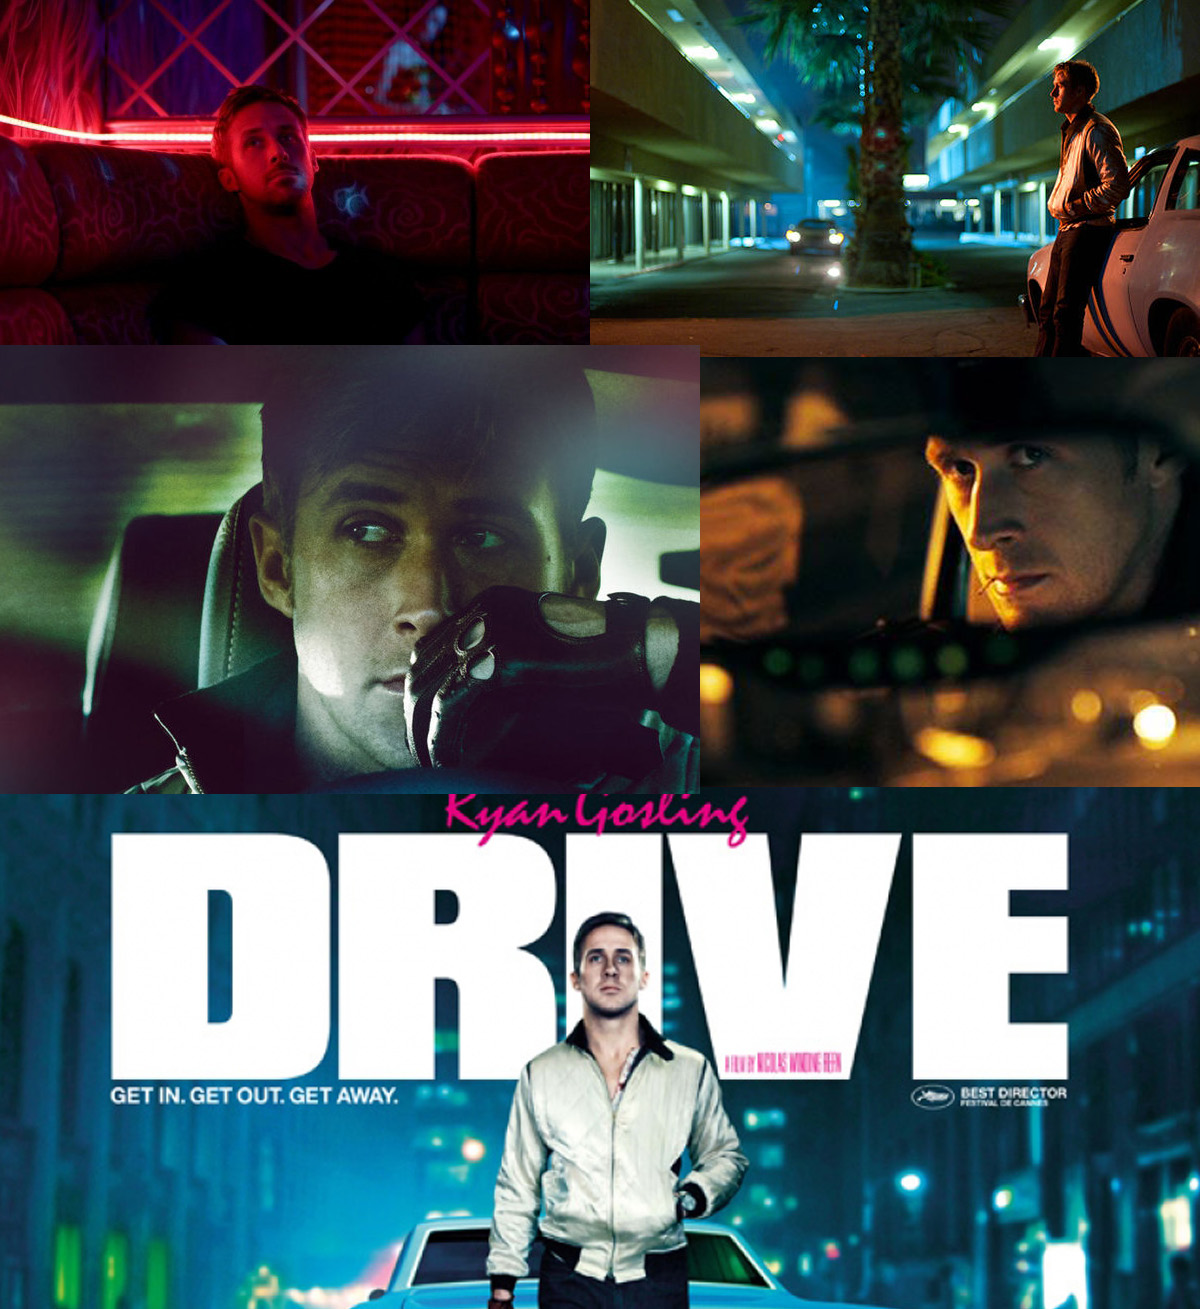 Drive, a movie directed by Nicolas Winding Refn is one of the most visually powerful films in recent history. Nicolas Winding Refn use outstanding colour palettes to tell his story.